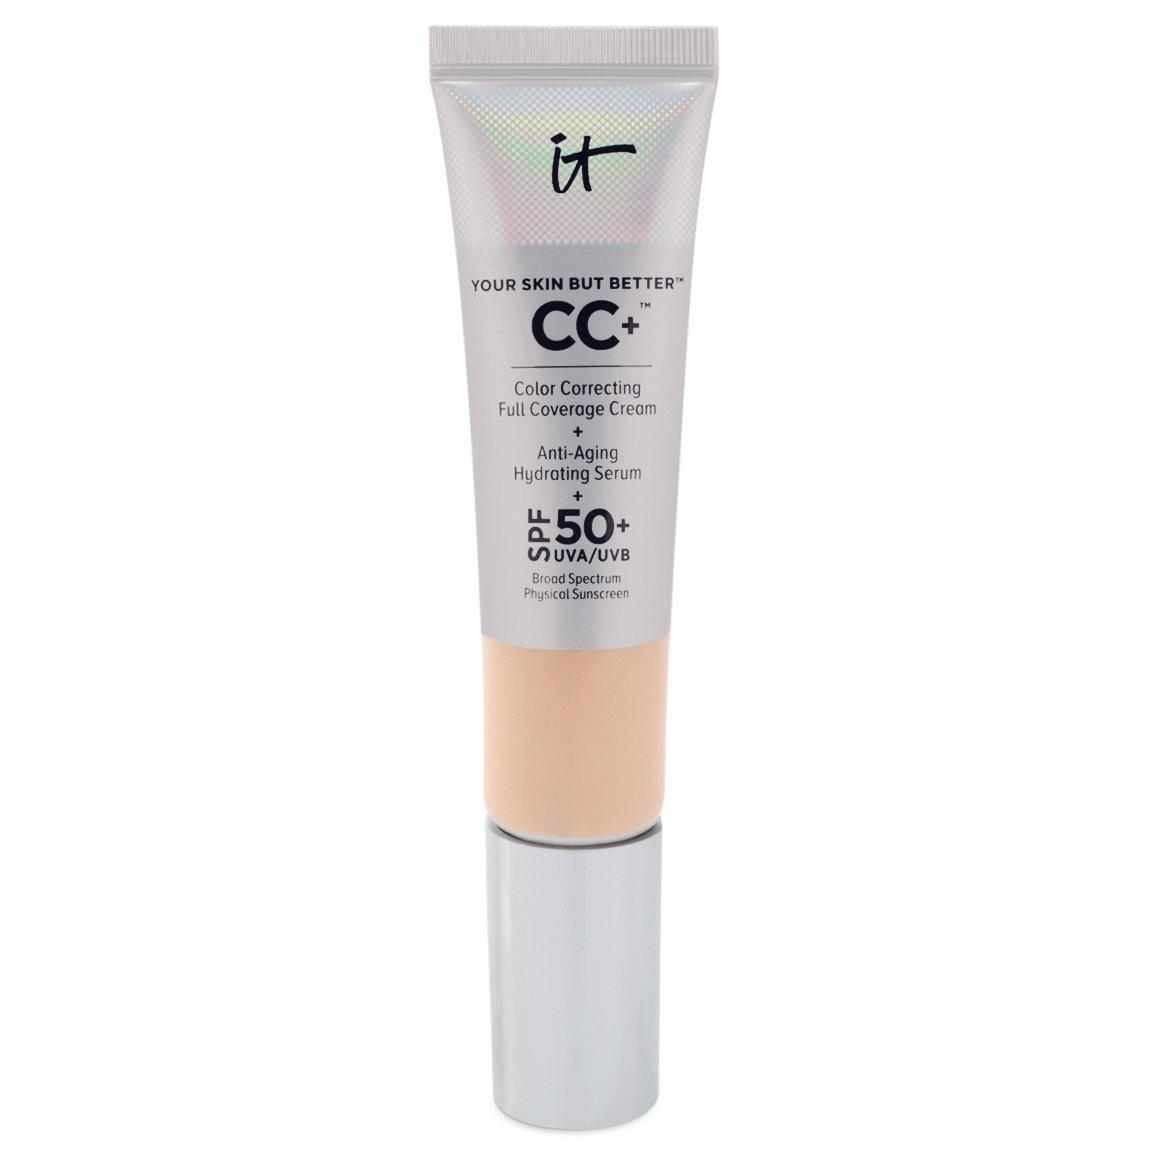 IT Cosmetics Your Skin But Better CC+ Cream with SPF 50 UVA/UVB 32ml (Light) Philippines